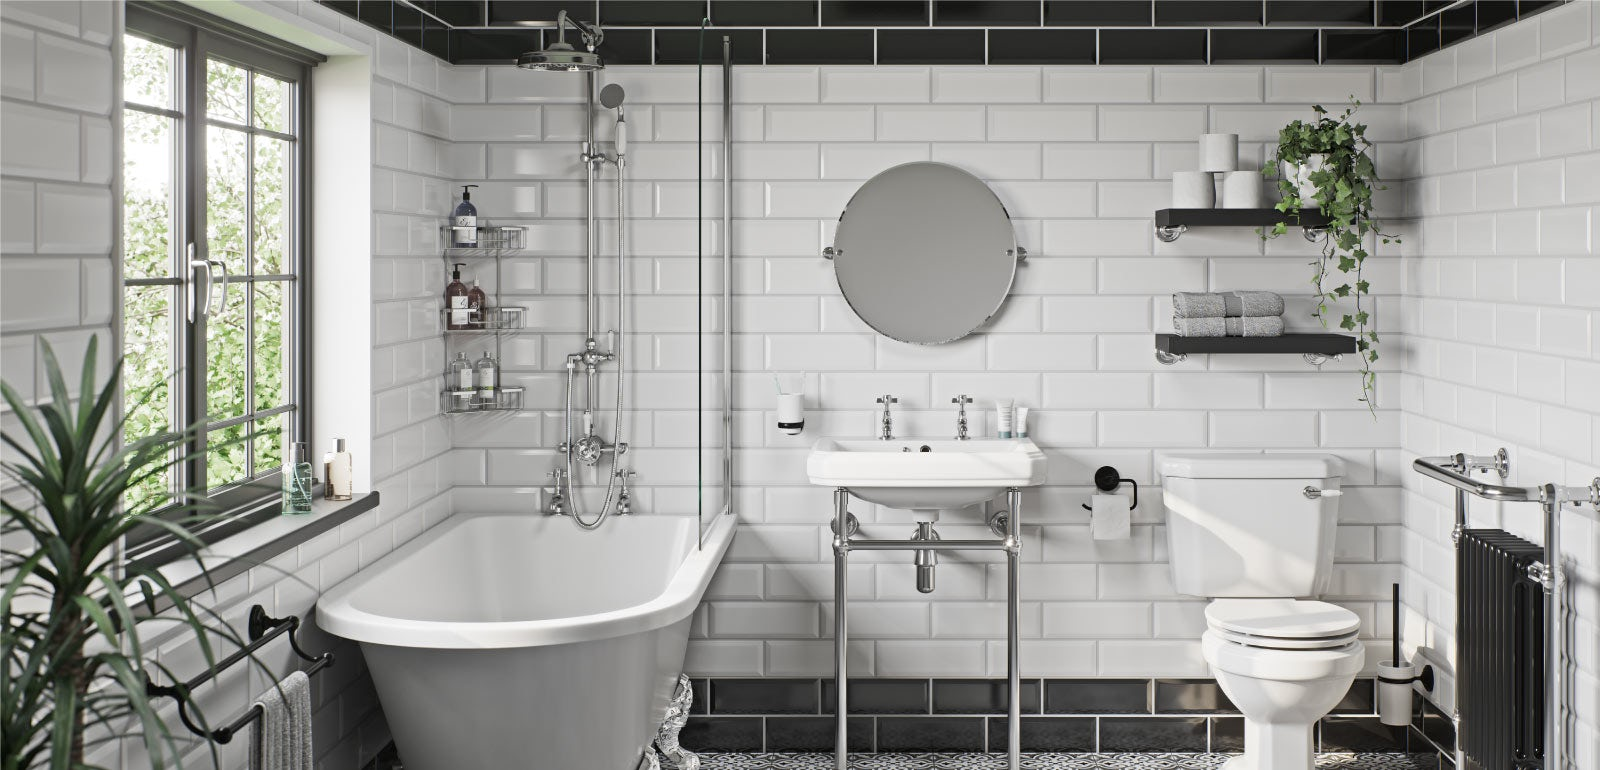 14 elegant traditional bathroom ideas  VictoriaPlum.com